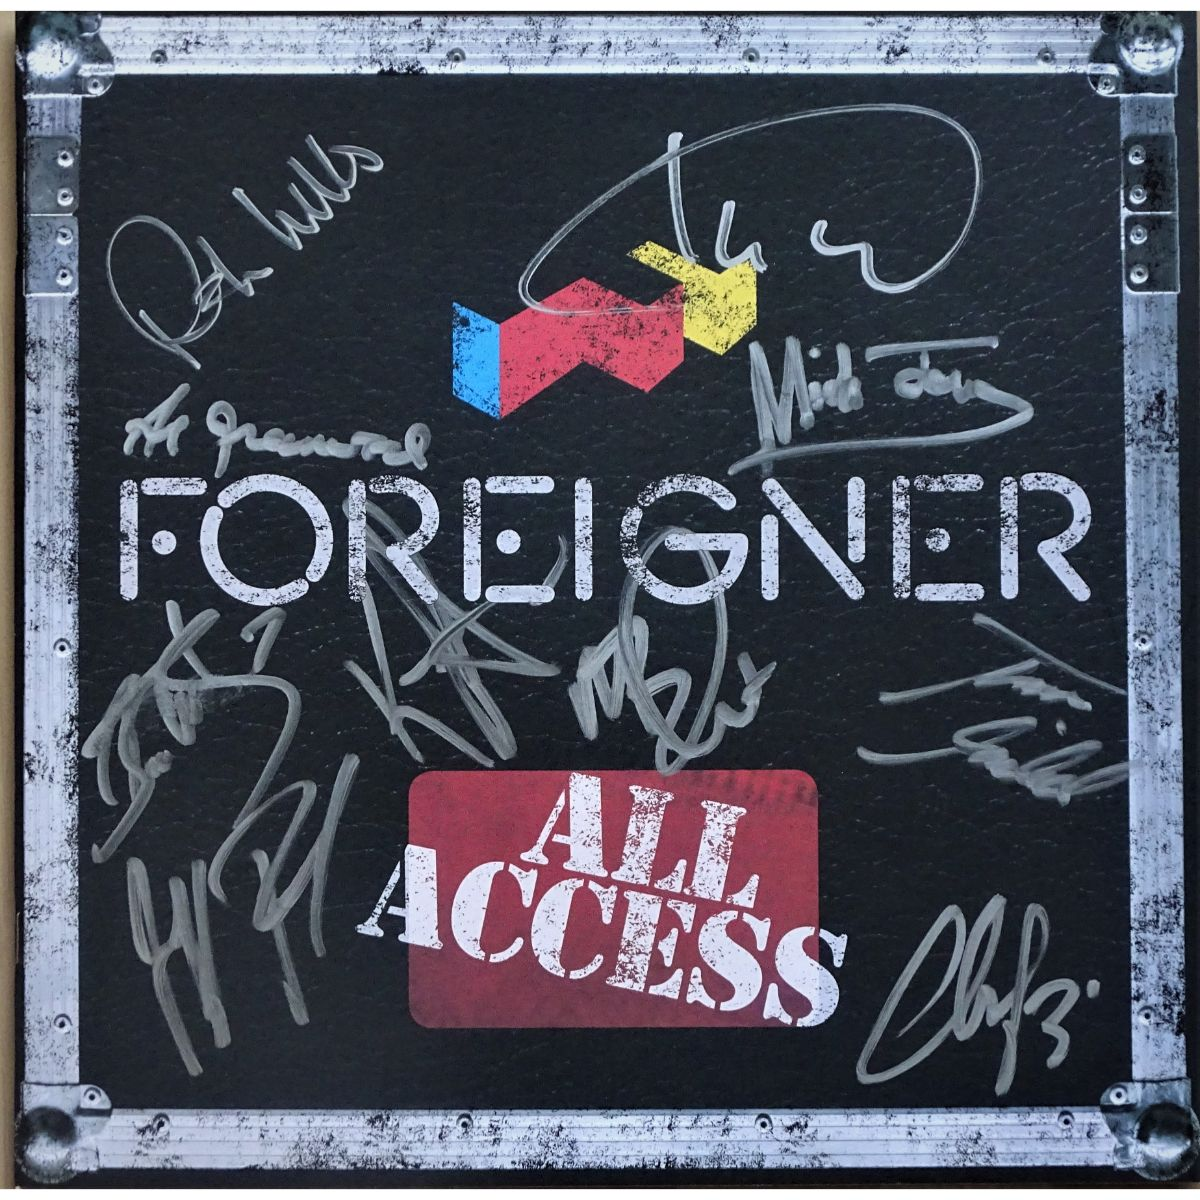 Foreigner 2019 Tour Program